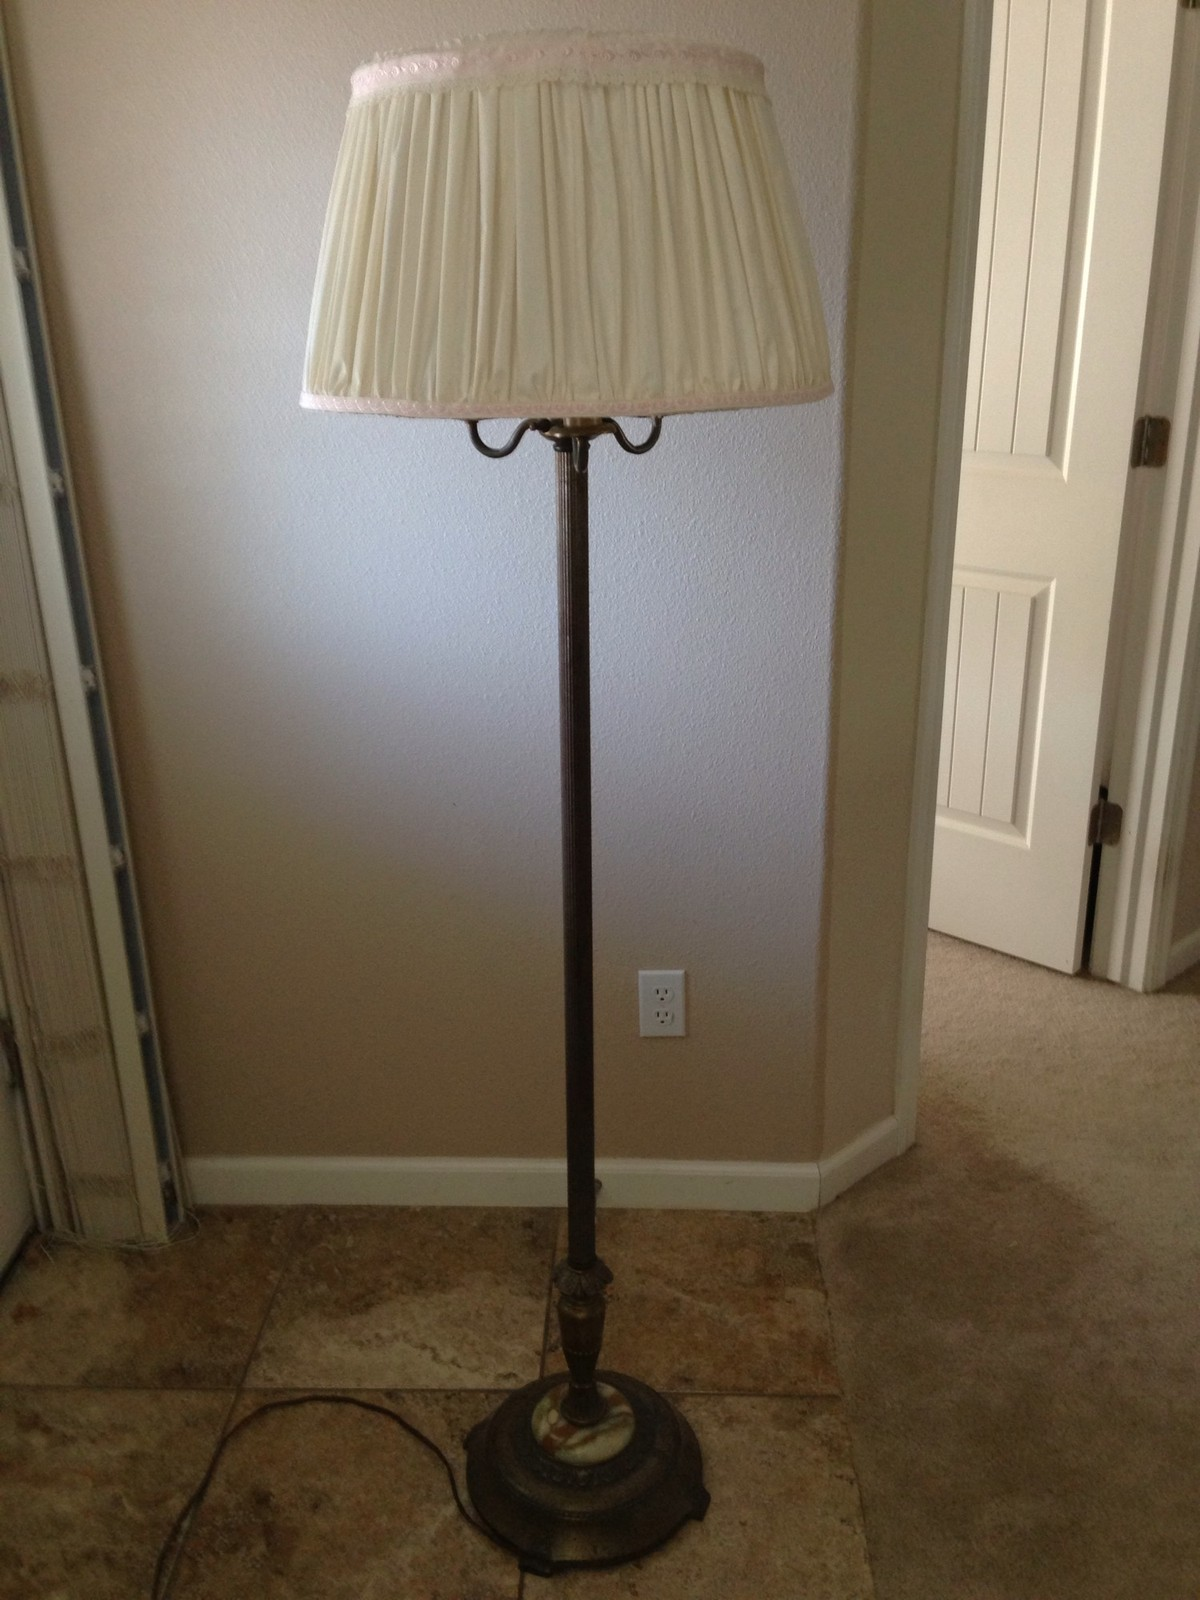 Antique Pole Lamps For A Better Lighting And Home